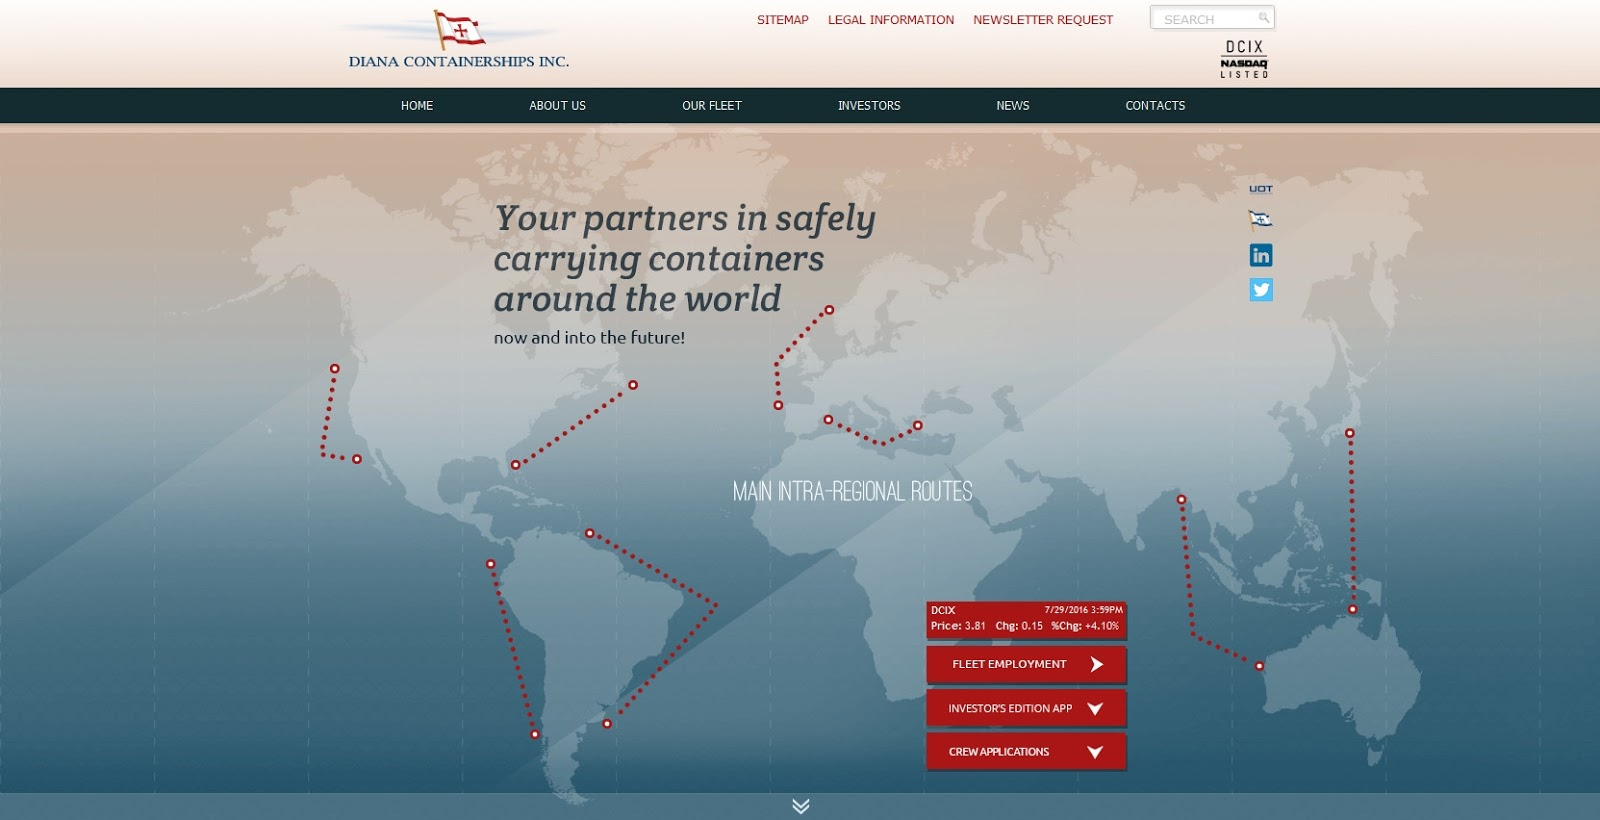 Diana Containerships